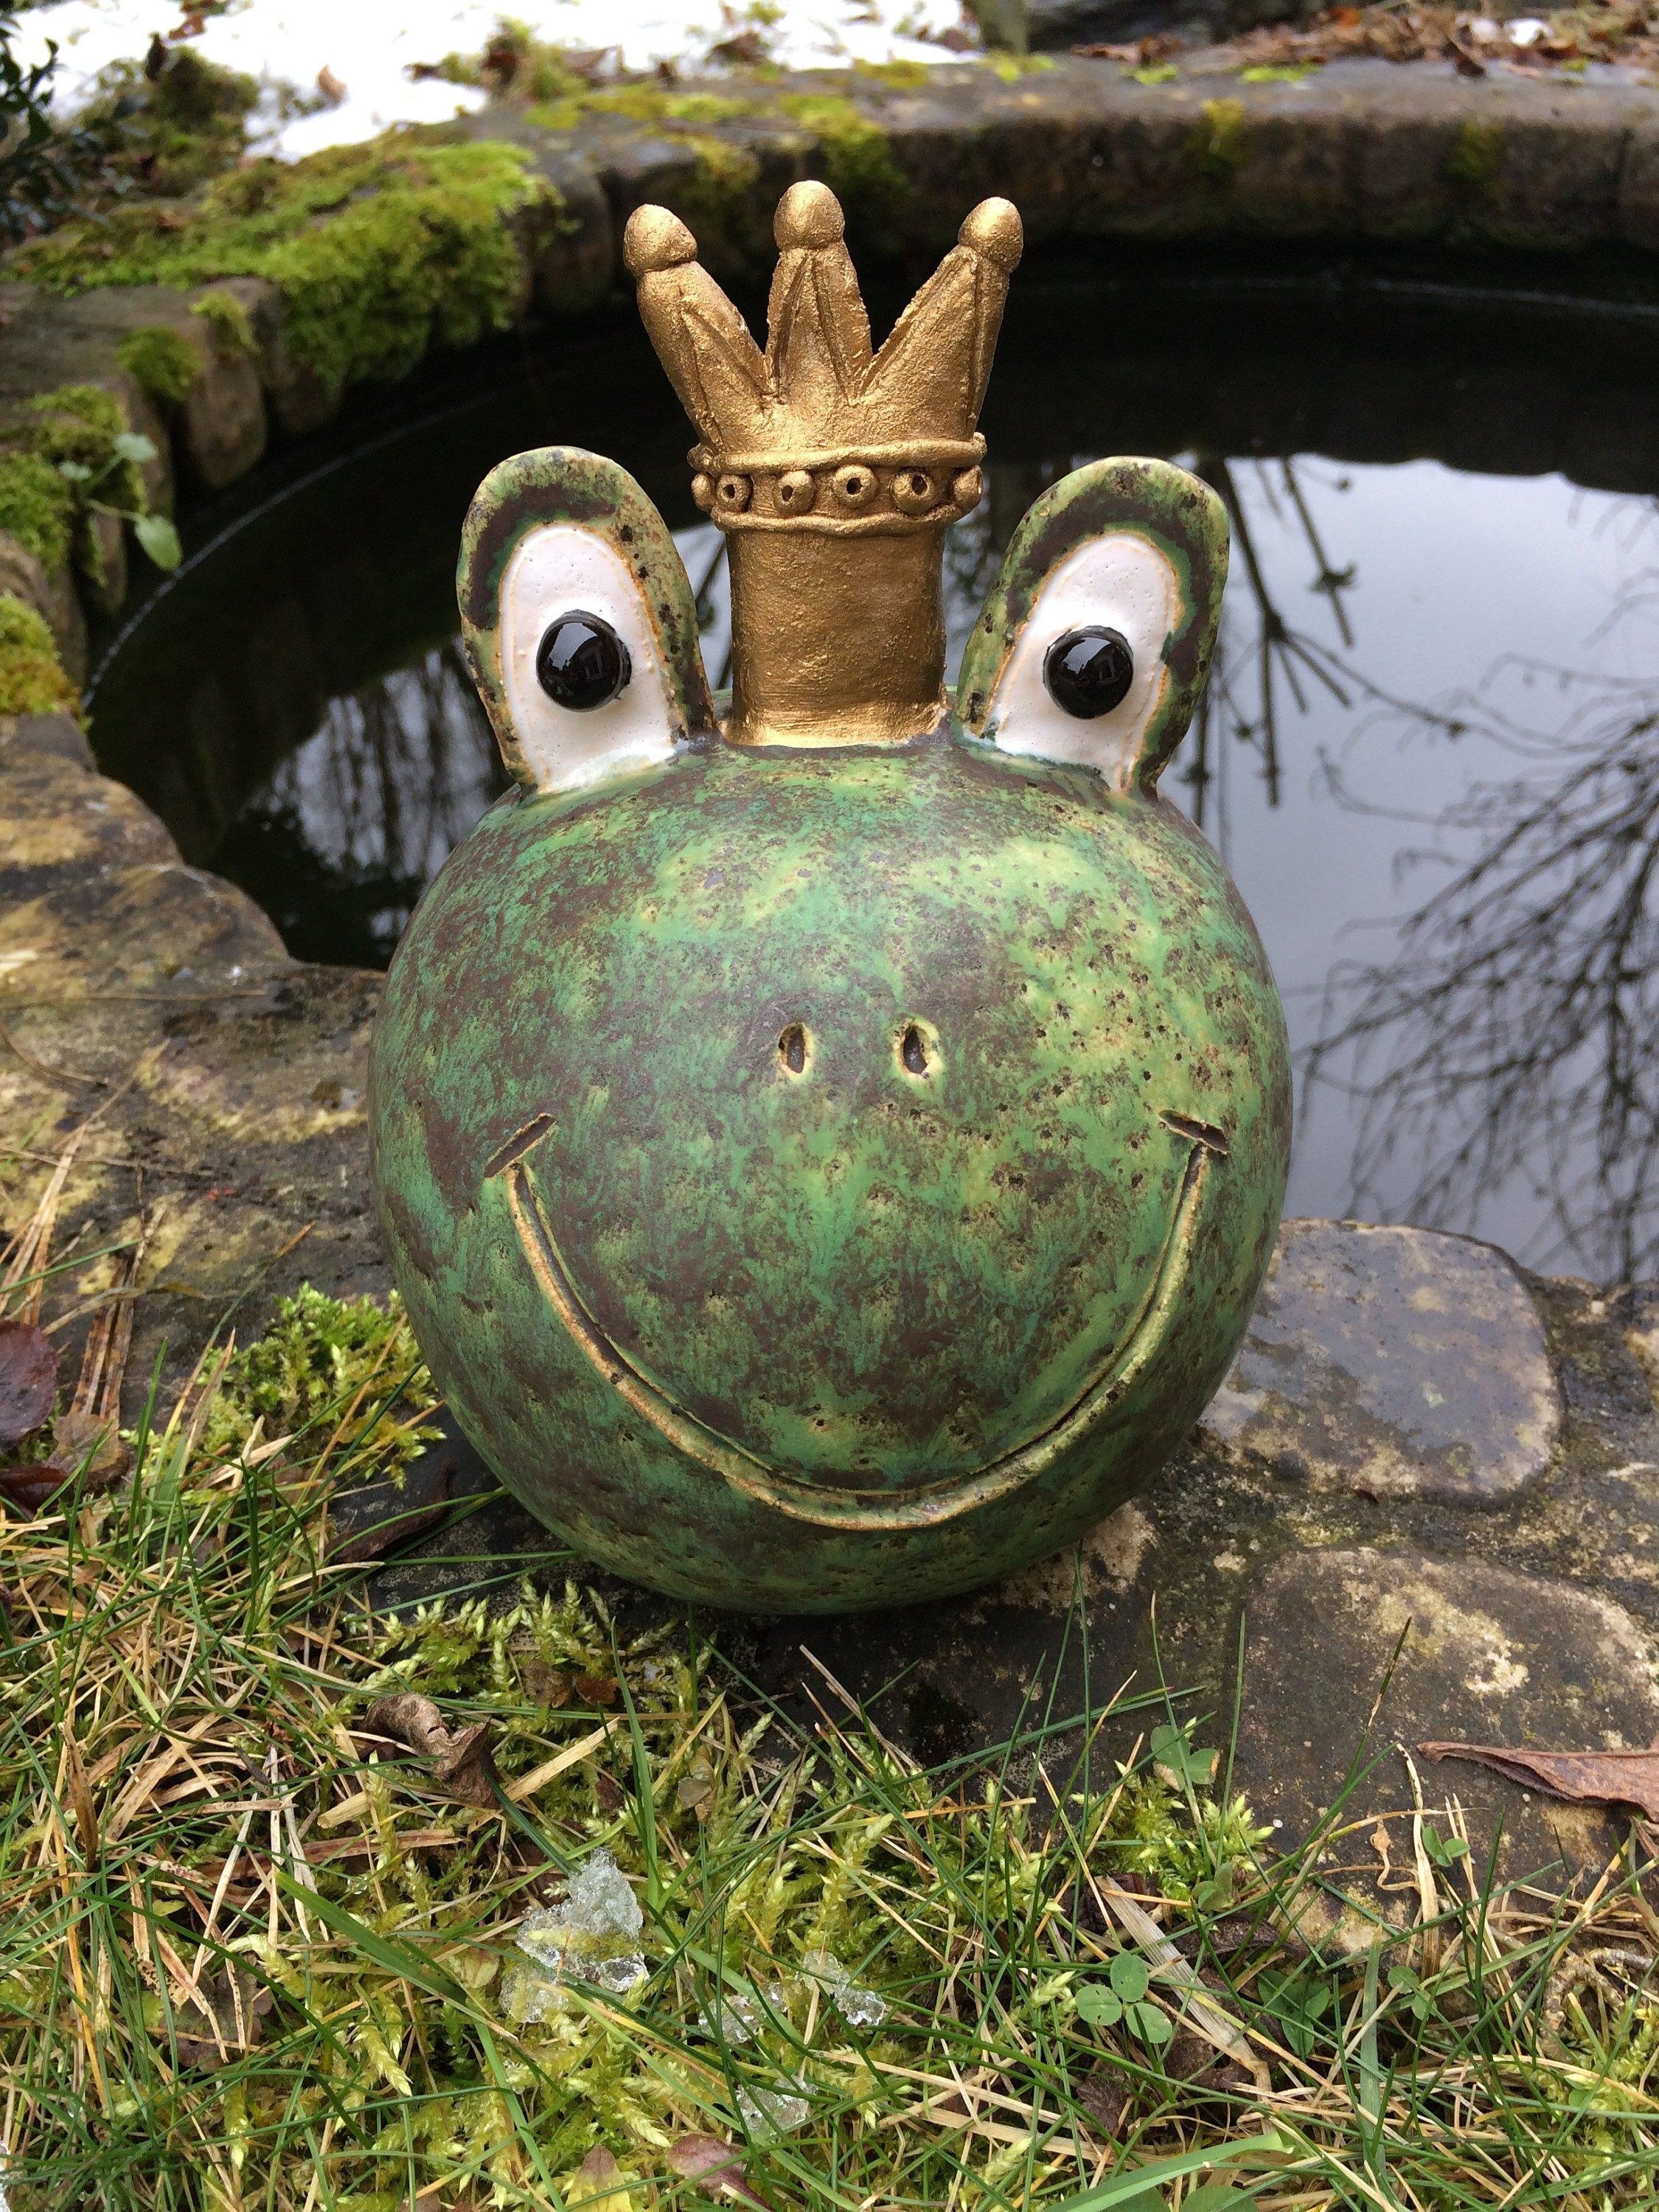 Kleine küchenideen, die sie geformt haben frog with golden crown  töpfern  pinterest  golden crown pottery